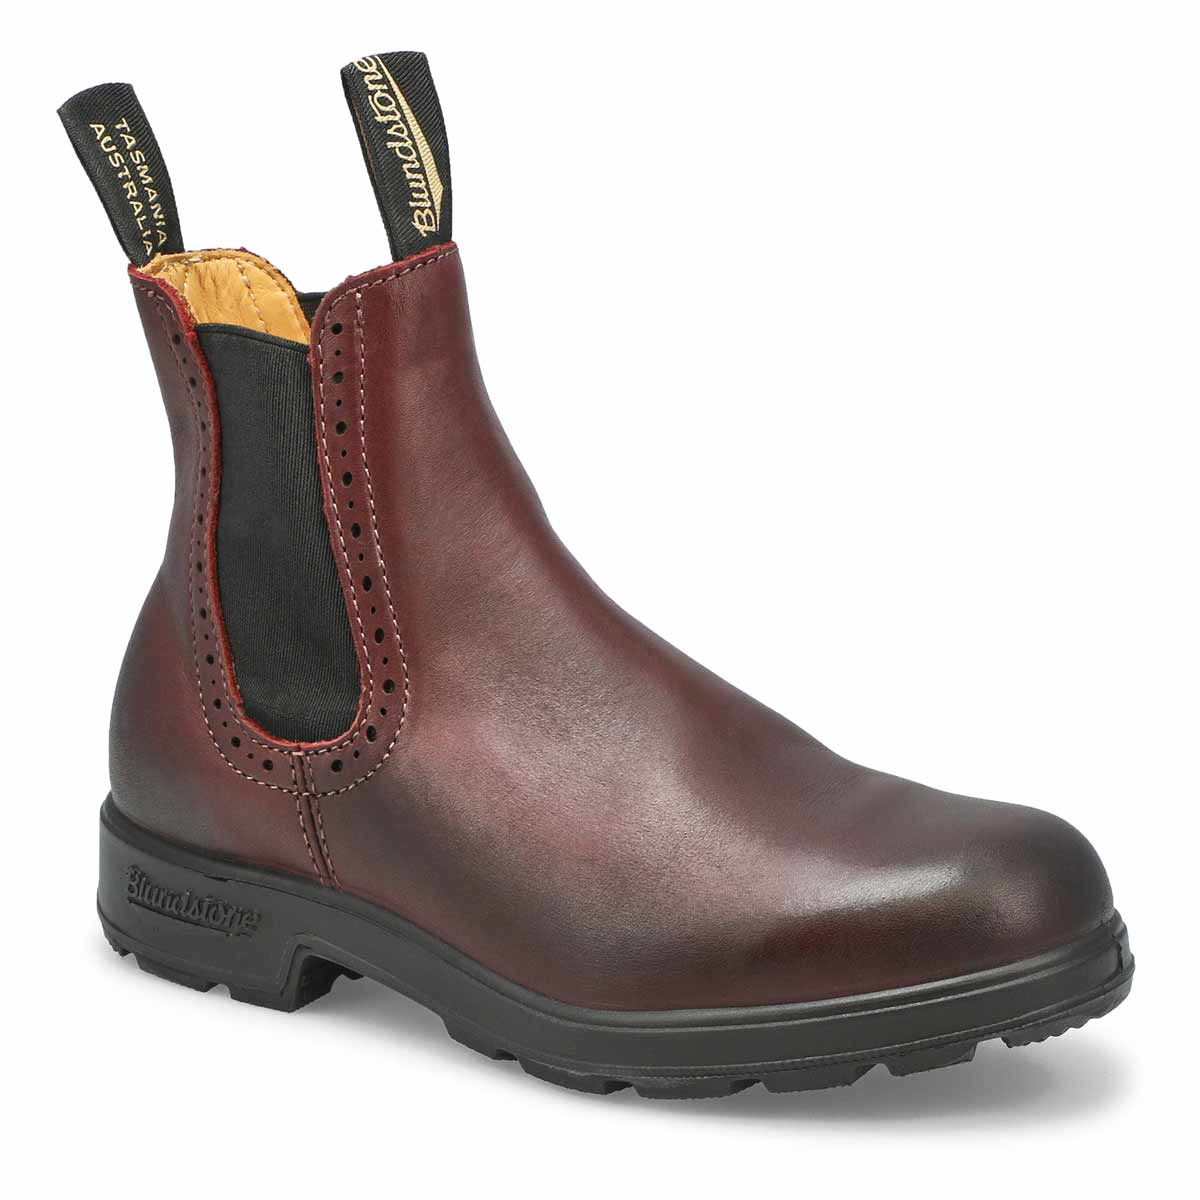 Lds Girlfriend shiraz gore boot